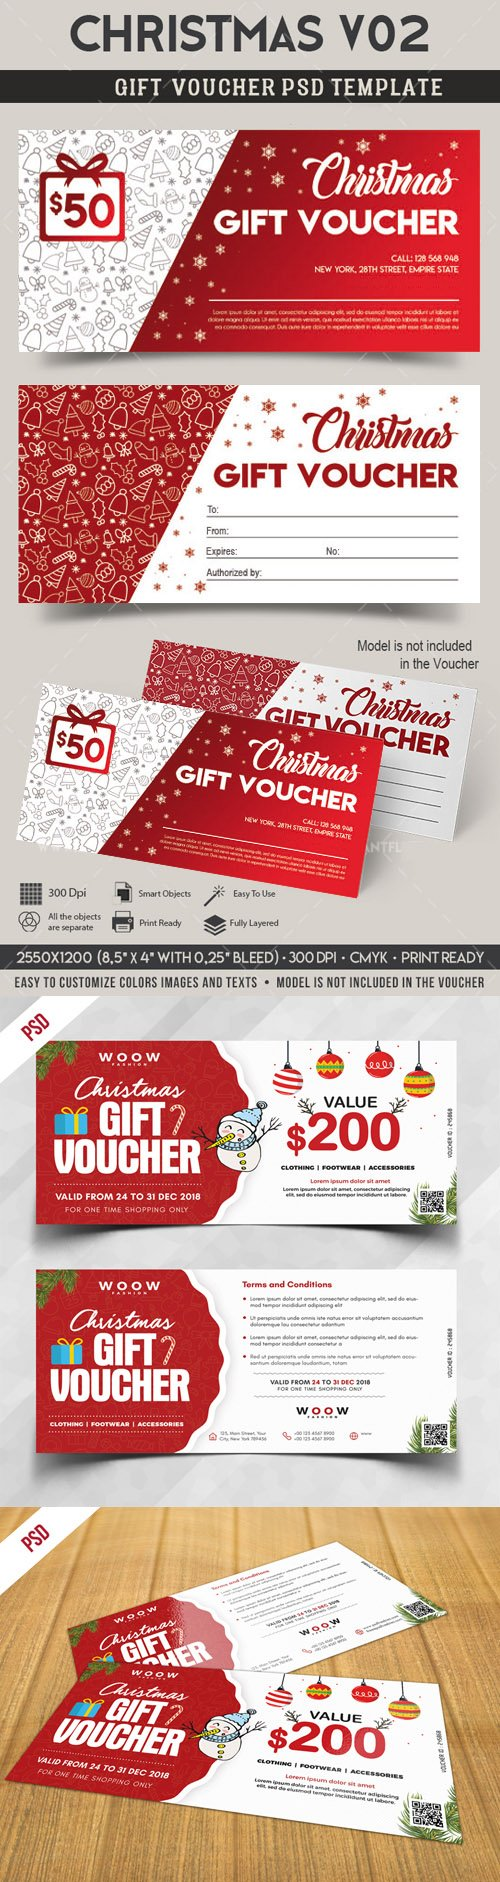 Holiday Season Sale Gift Voucher PSD Templates